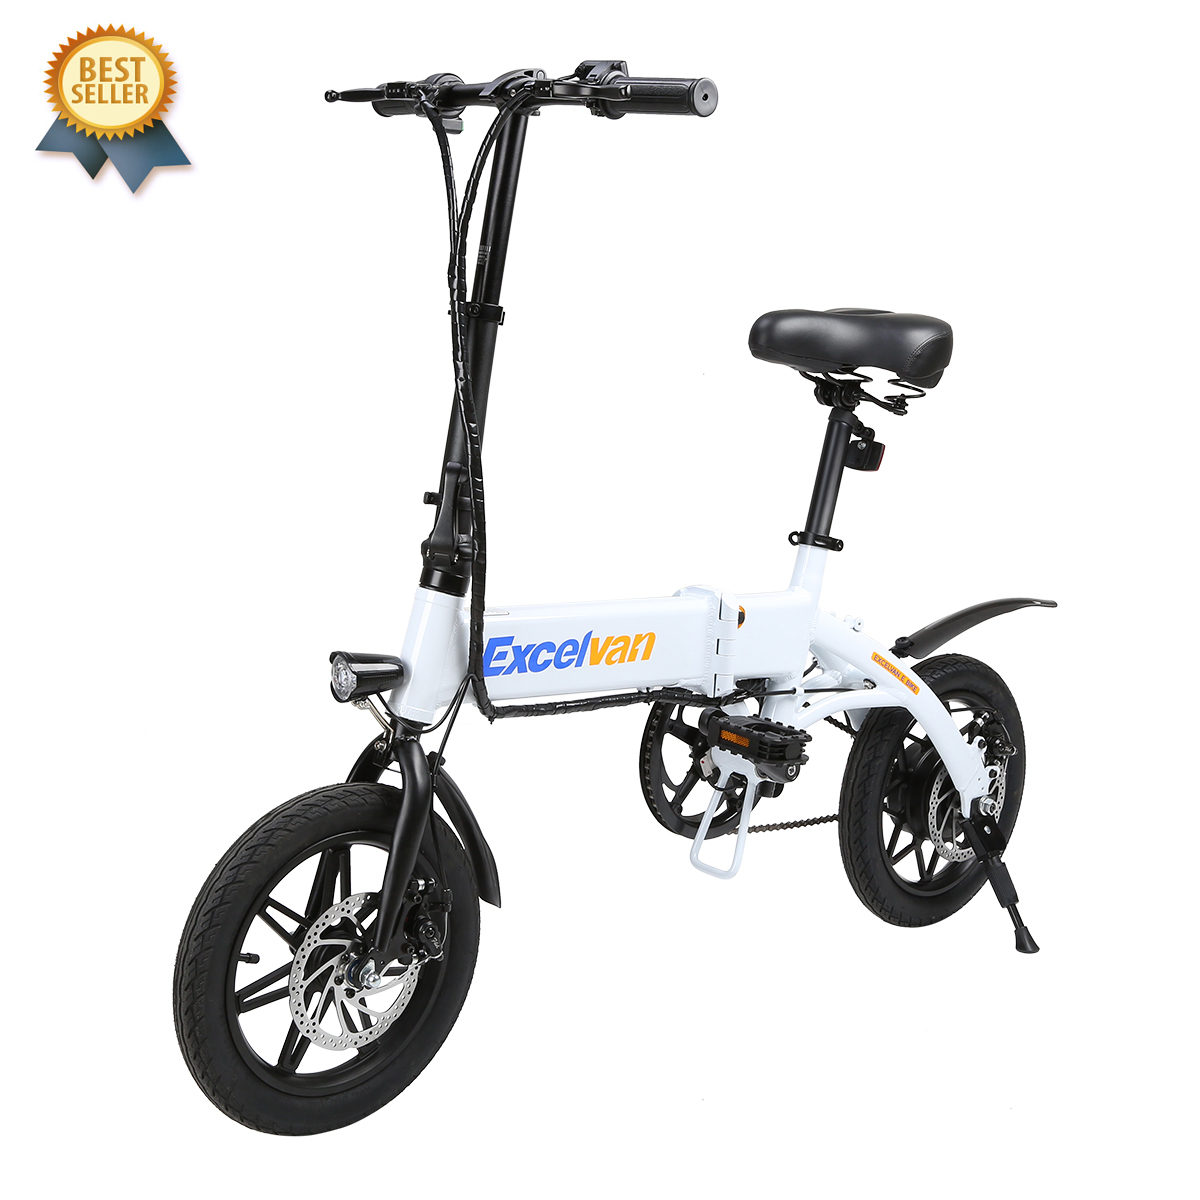 Excelvan Folding E-Bike Pro Lightweight Bicycle Multi-Speed Cruiser Bike 14inch Wheels